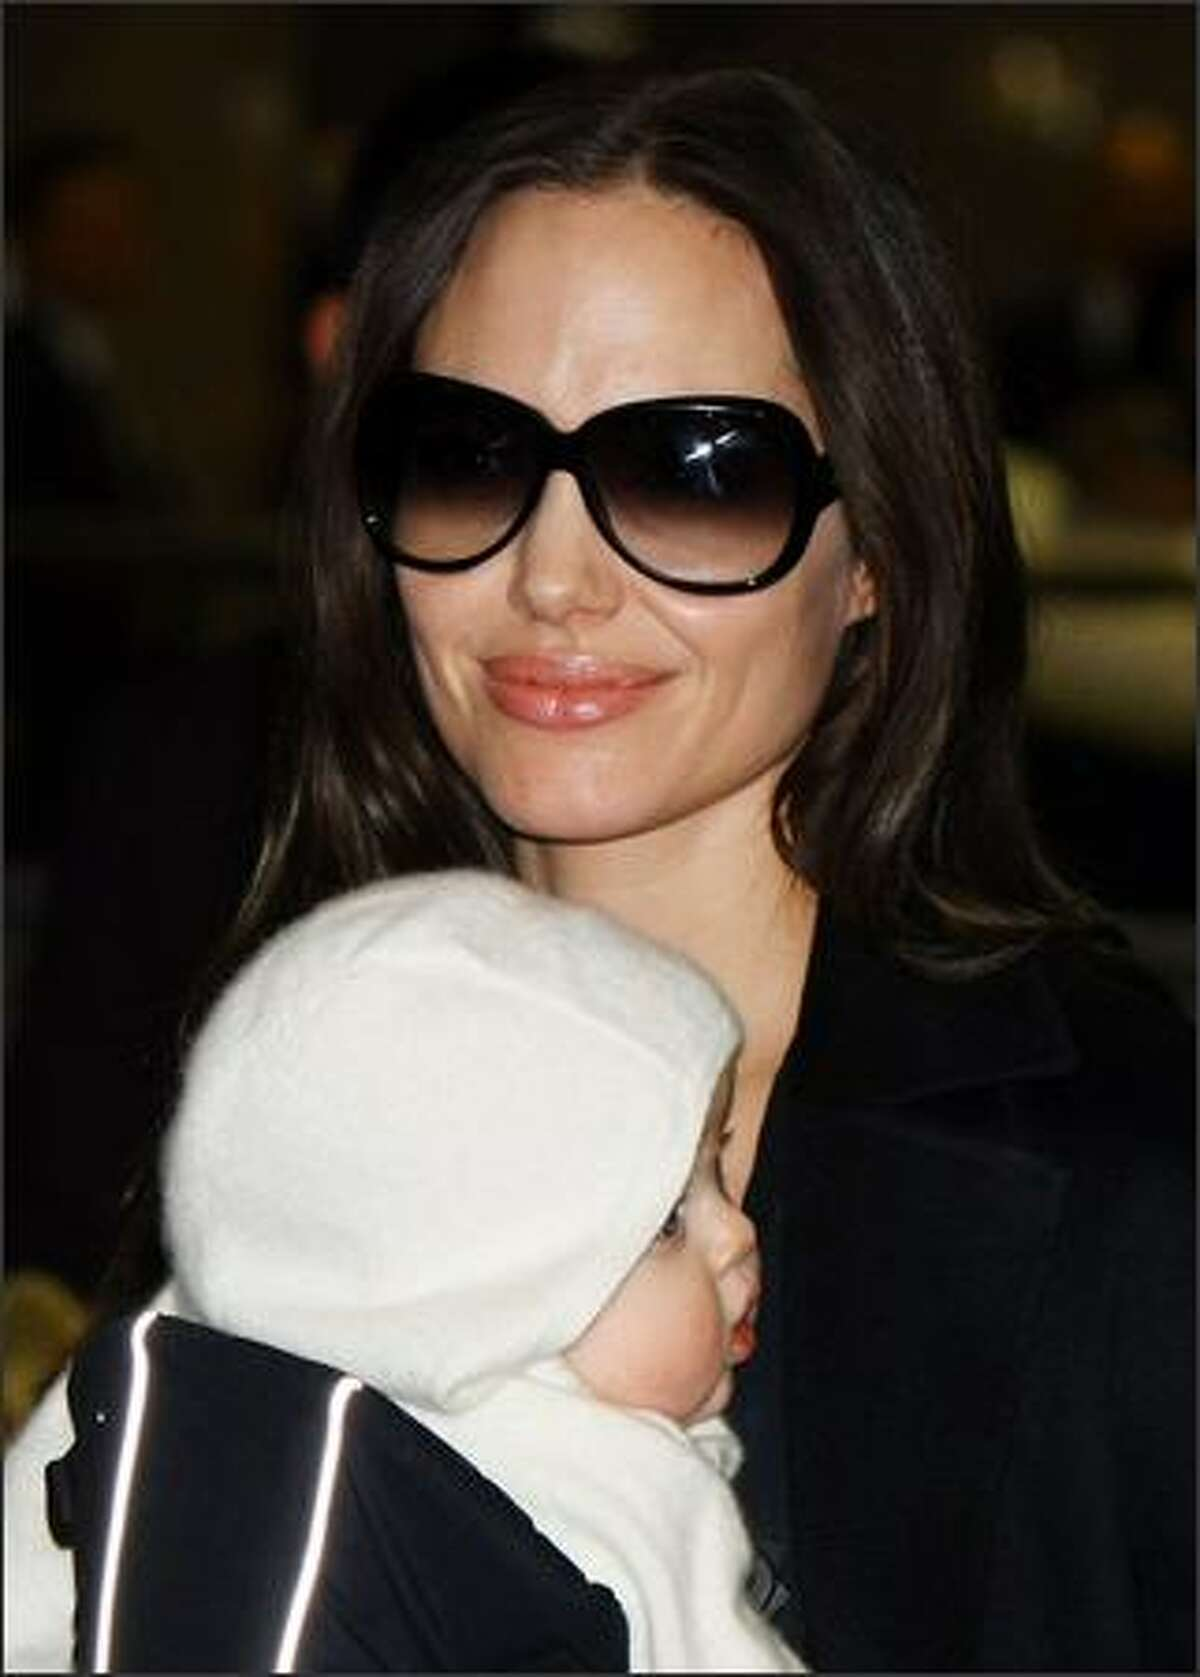 Actress Angelina Jolie arrives at Narita International Airport with her baby, Vivienne, in Narita, Chiba, Japan. Angelina is visiting Japan to promote her film